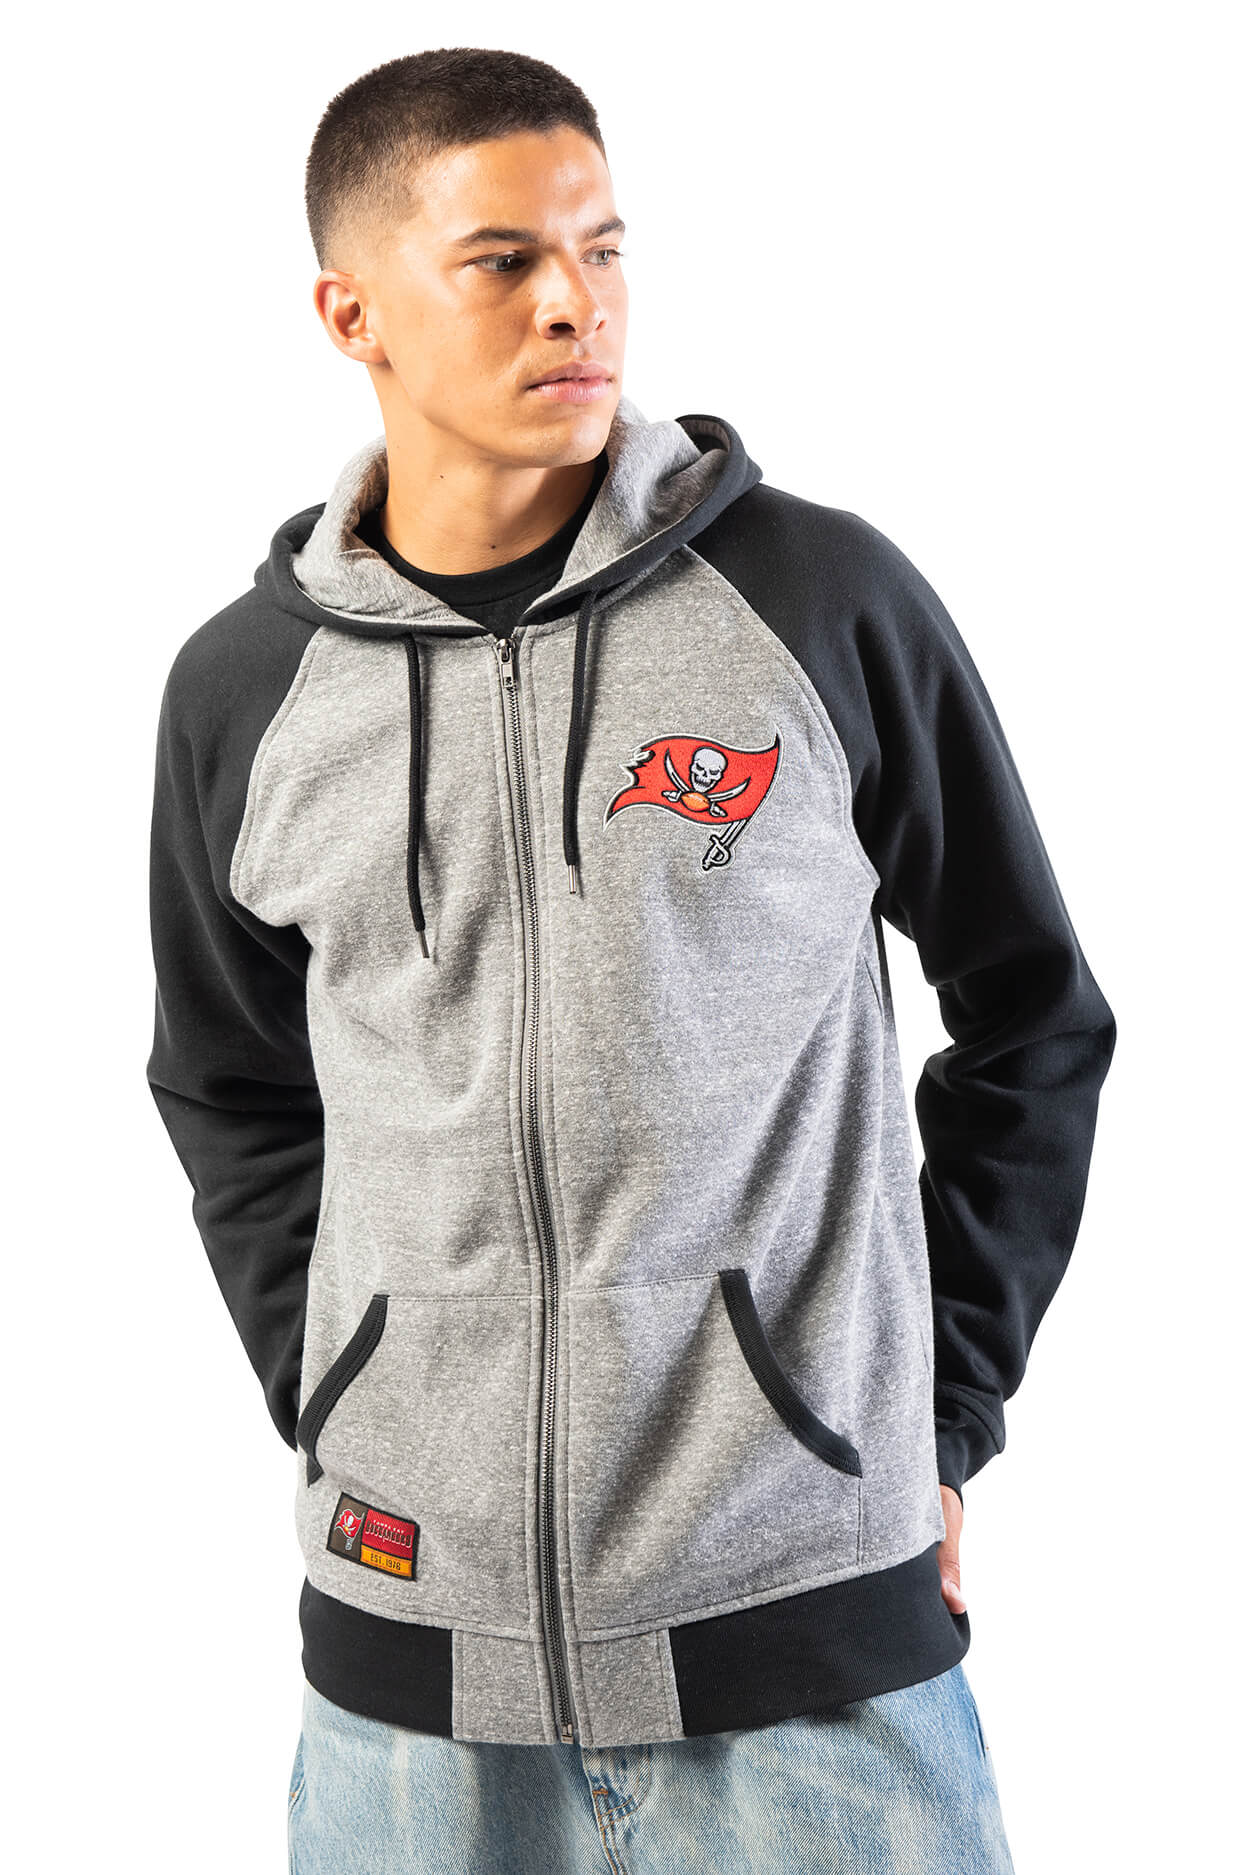 NFL Tampa Bay Buccaneers Men's Full Zip Hoodie|Tampa Bay Buccaneers